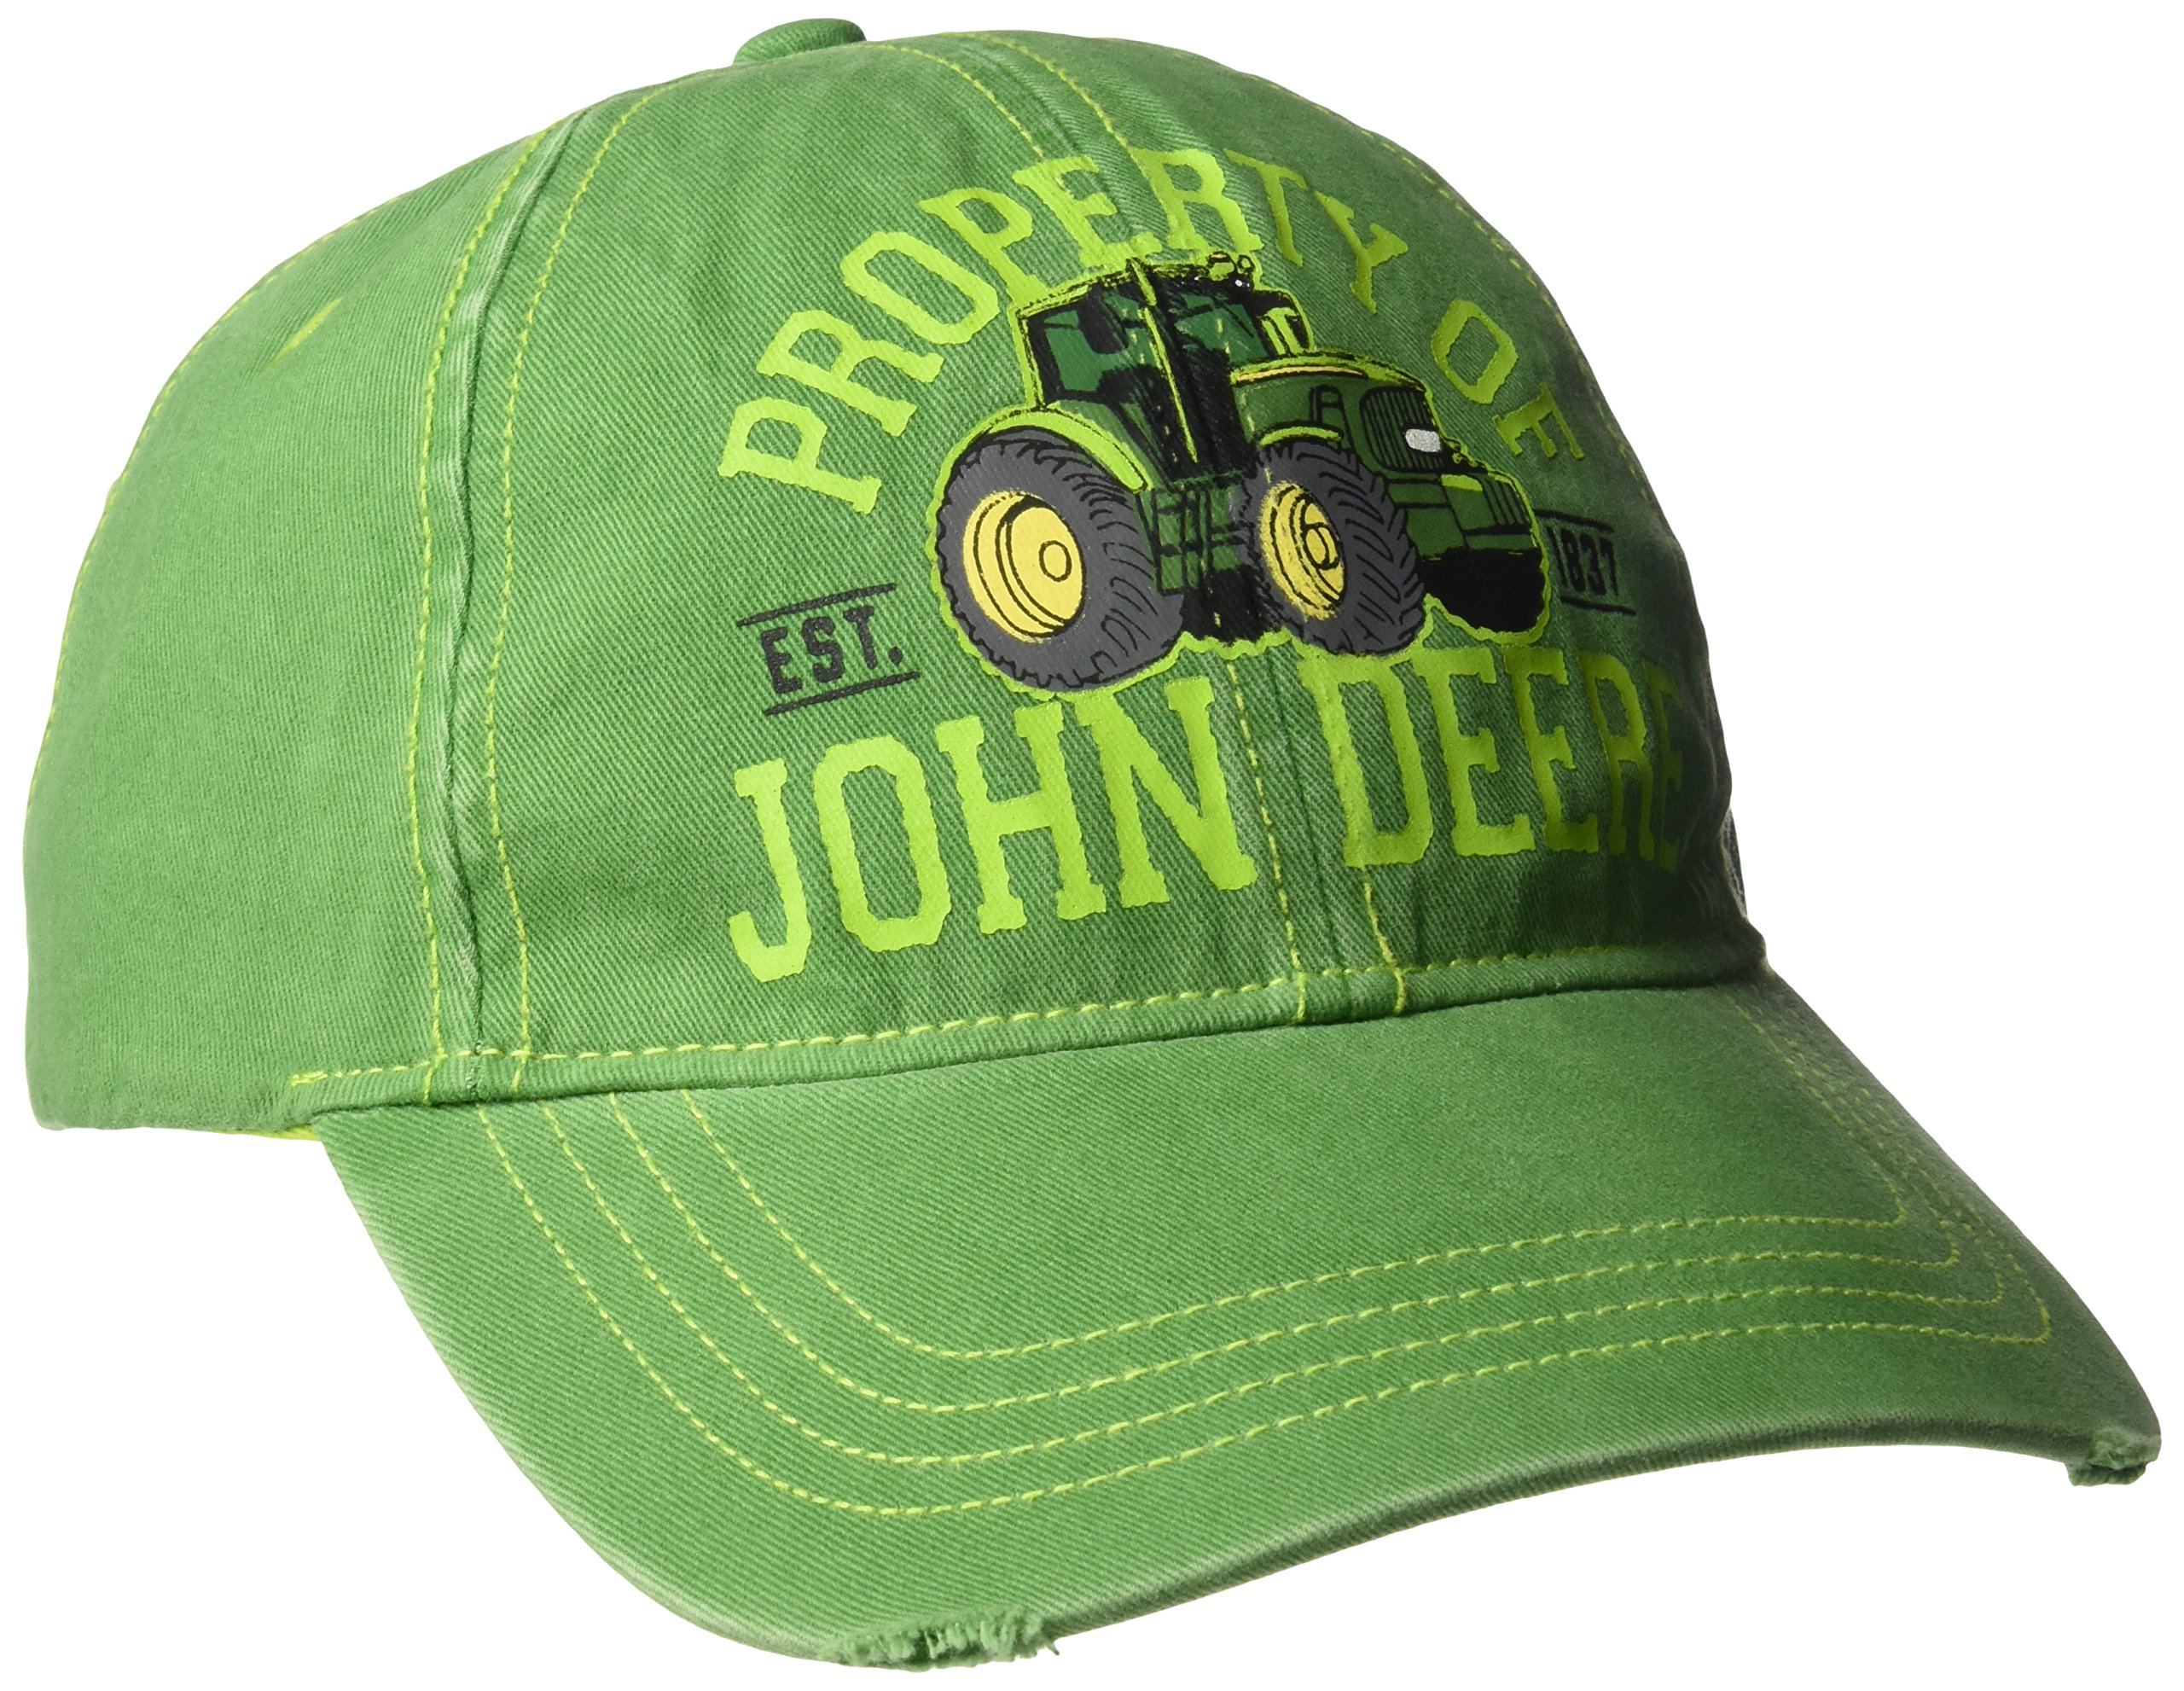 John Deere Boys' Little Baseball Cap, Green, Toddler by John Deere